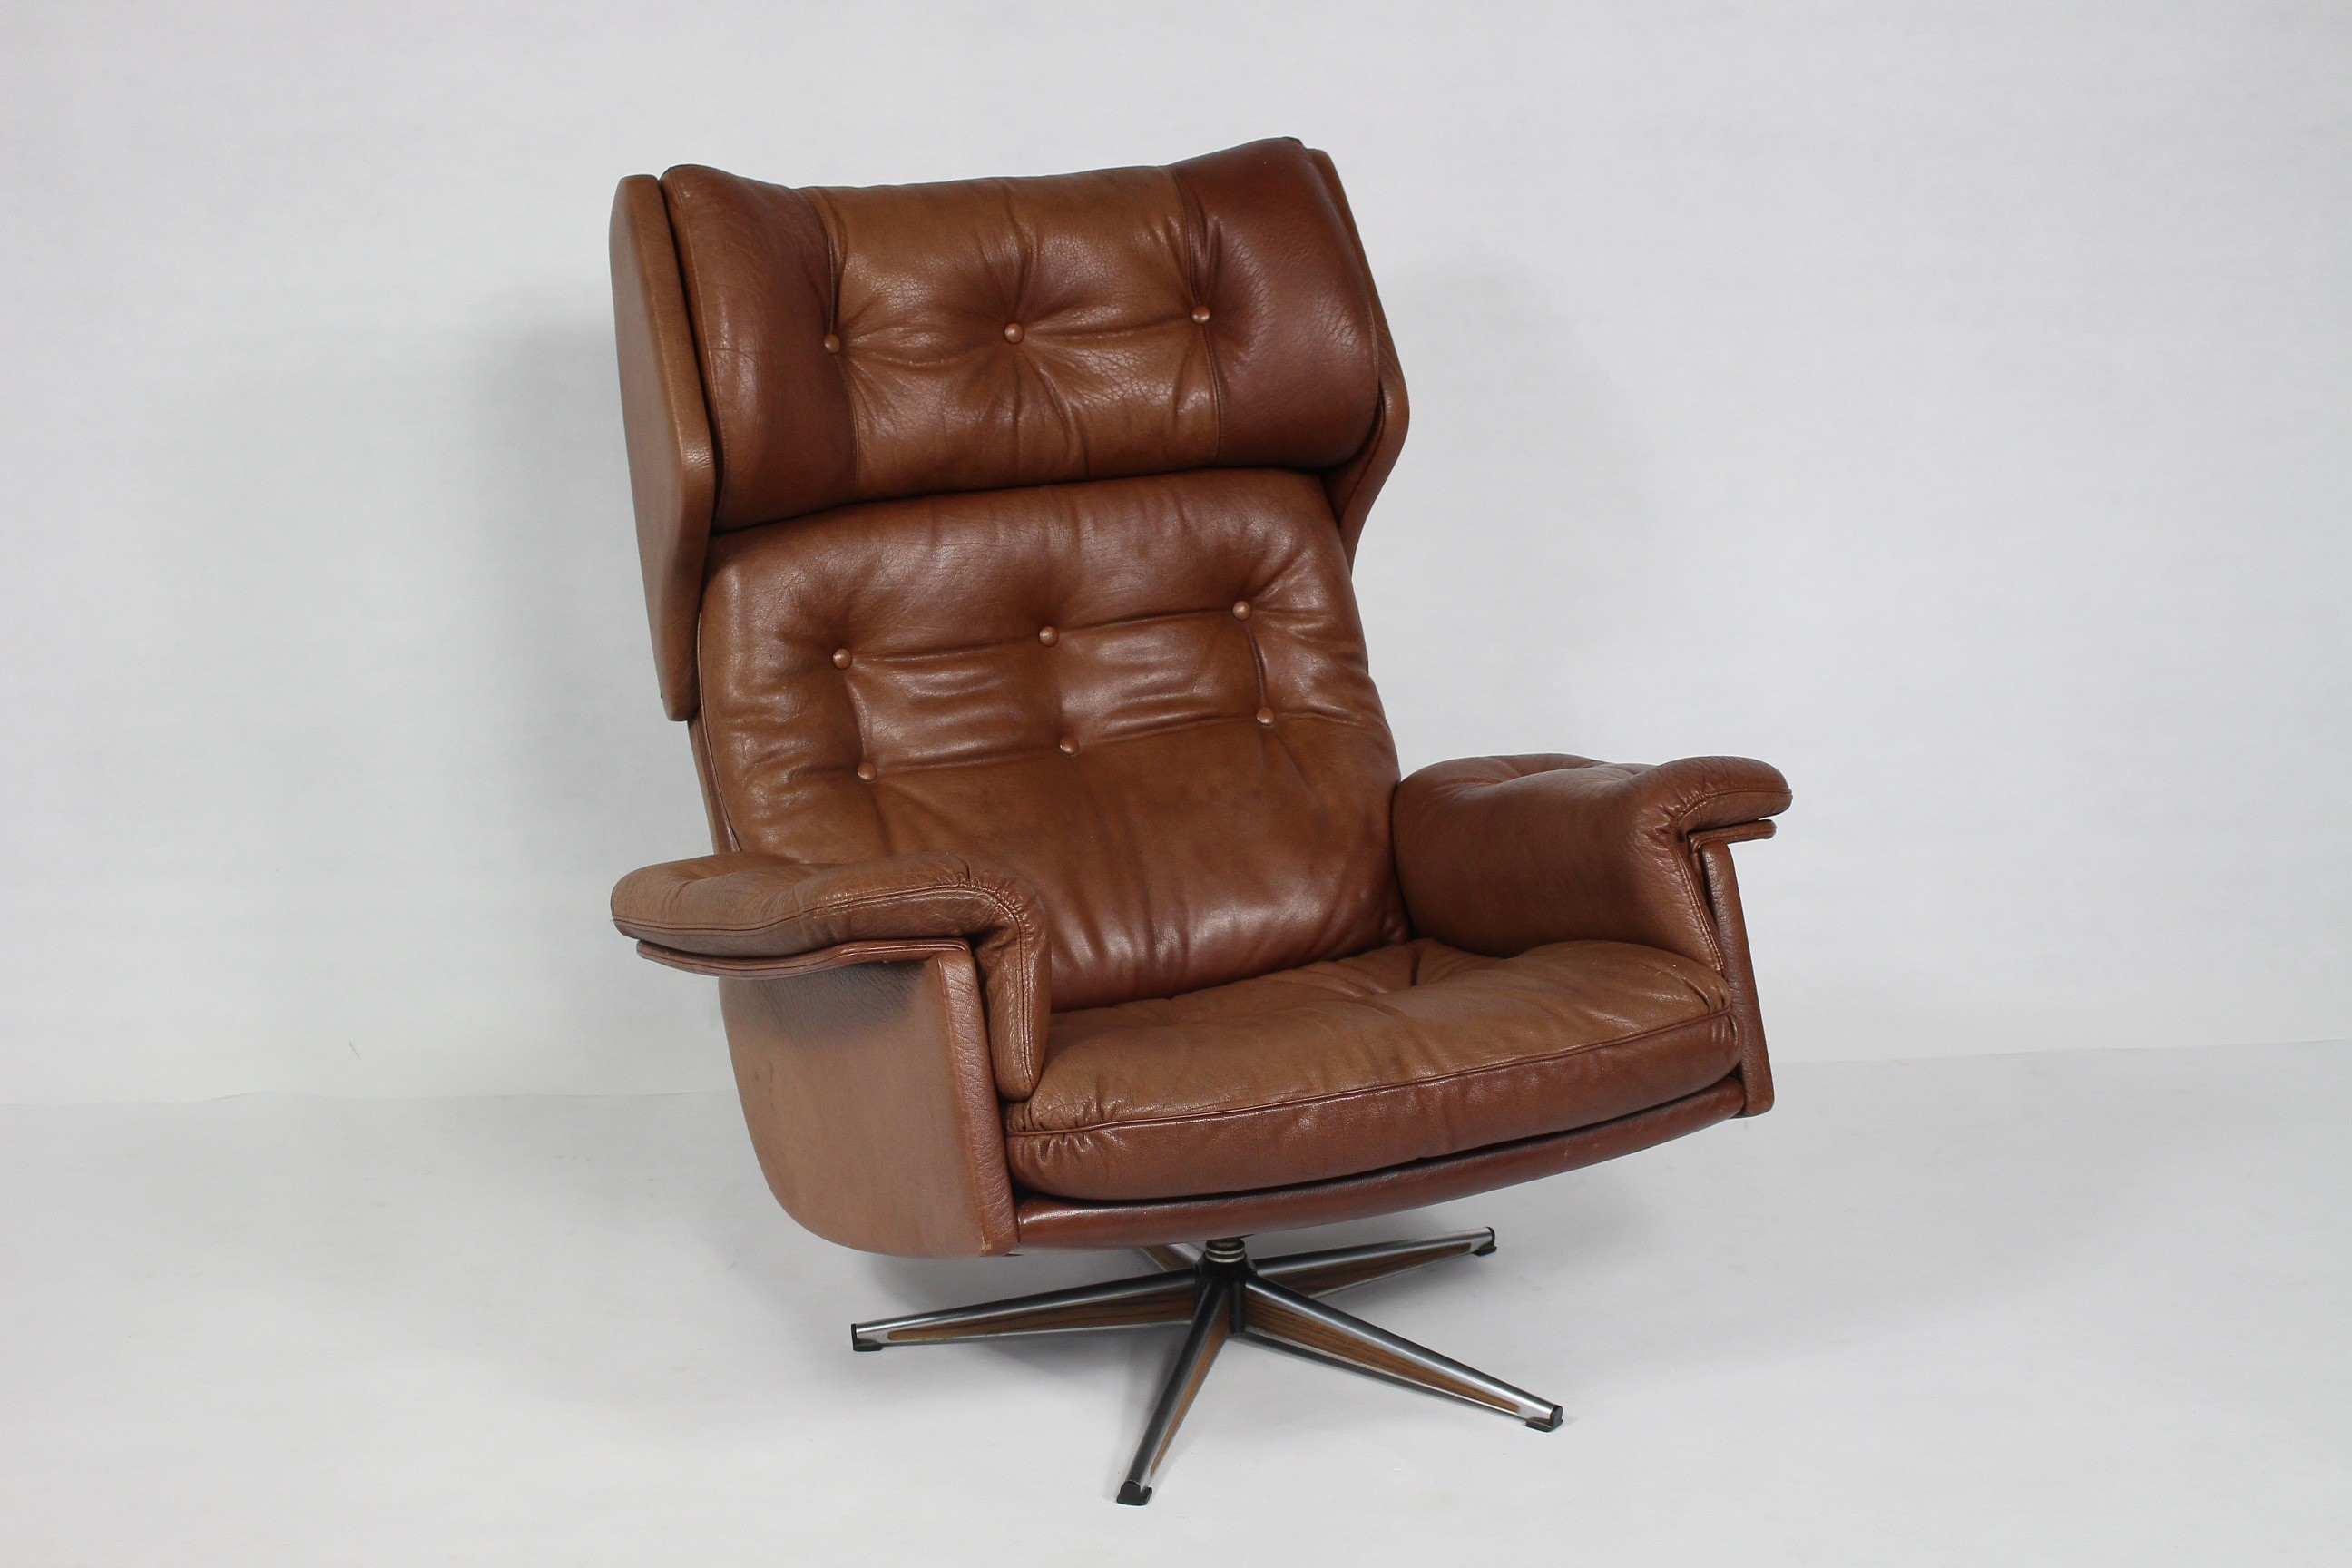 Vintage leather swivel armchair - 1960s - Design Market